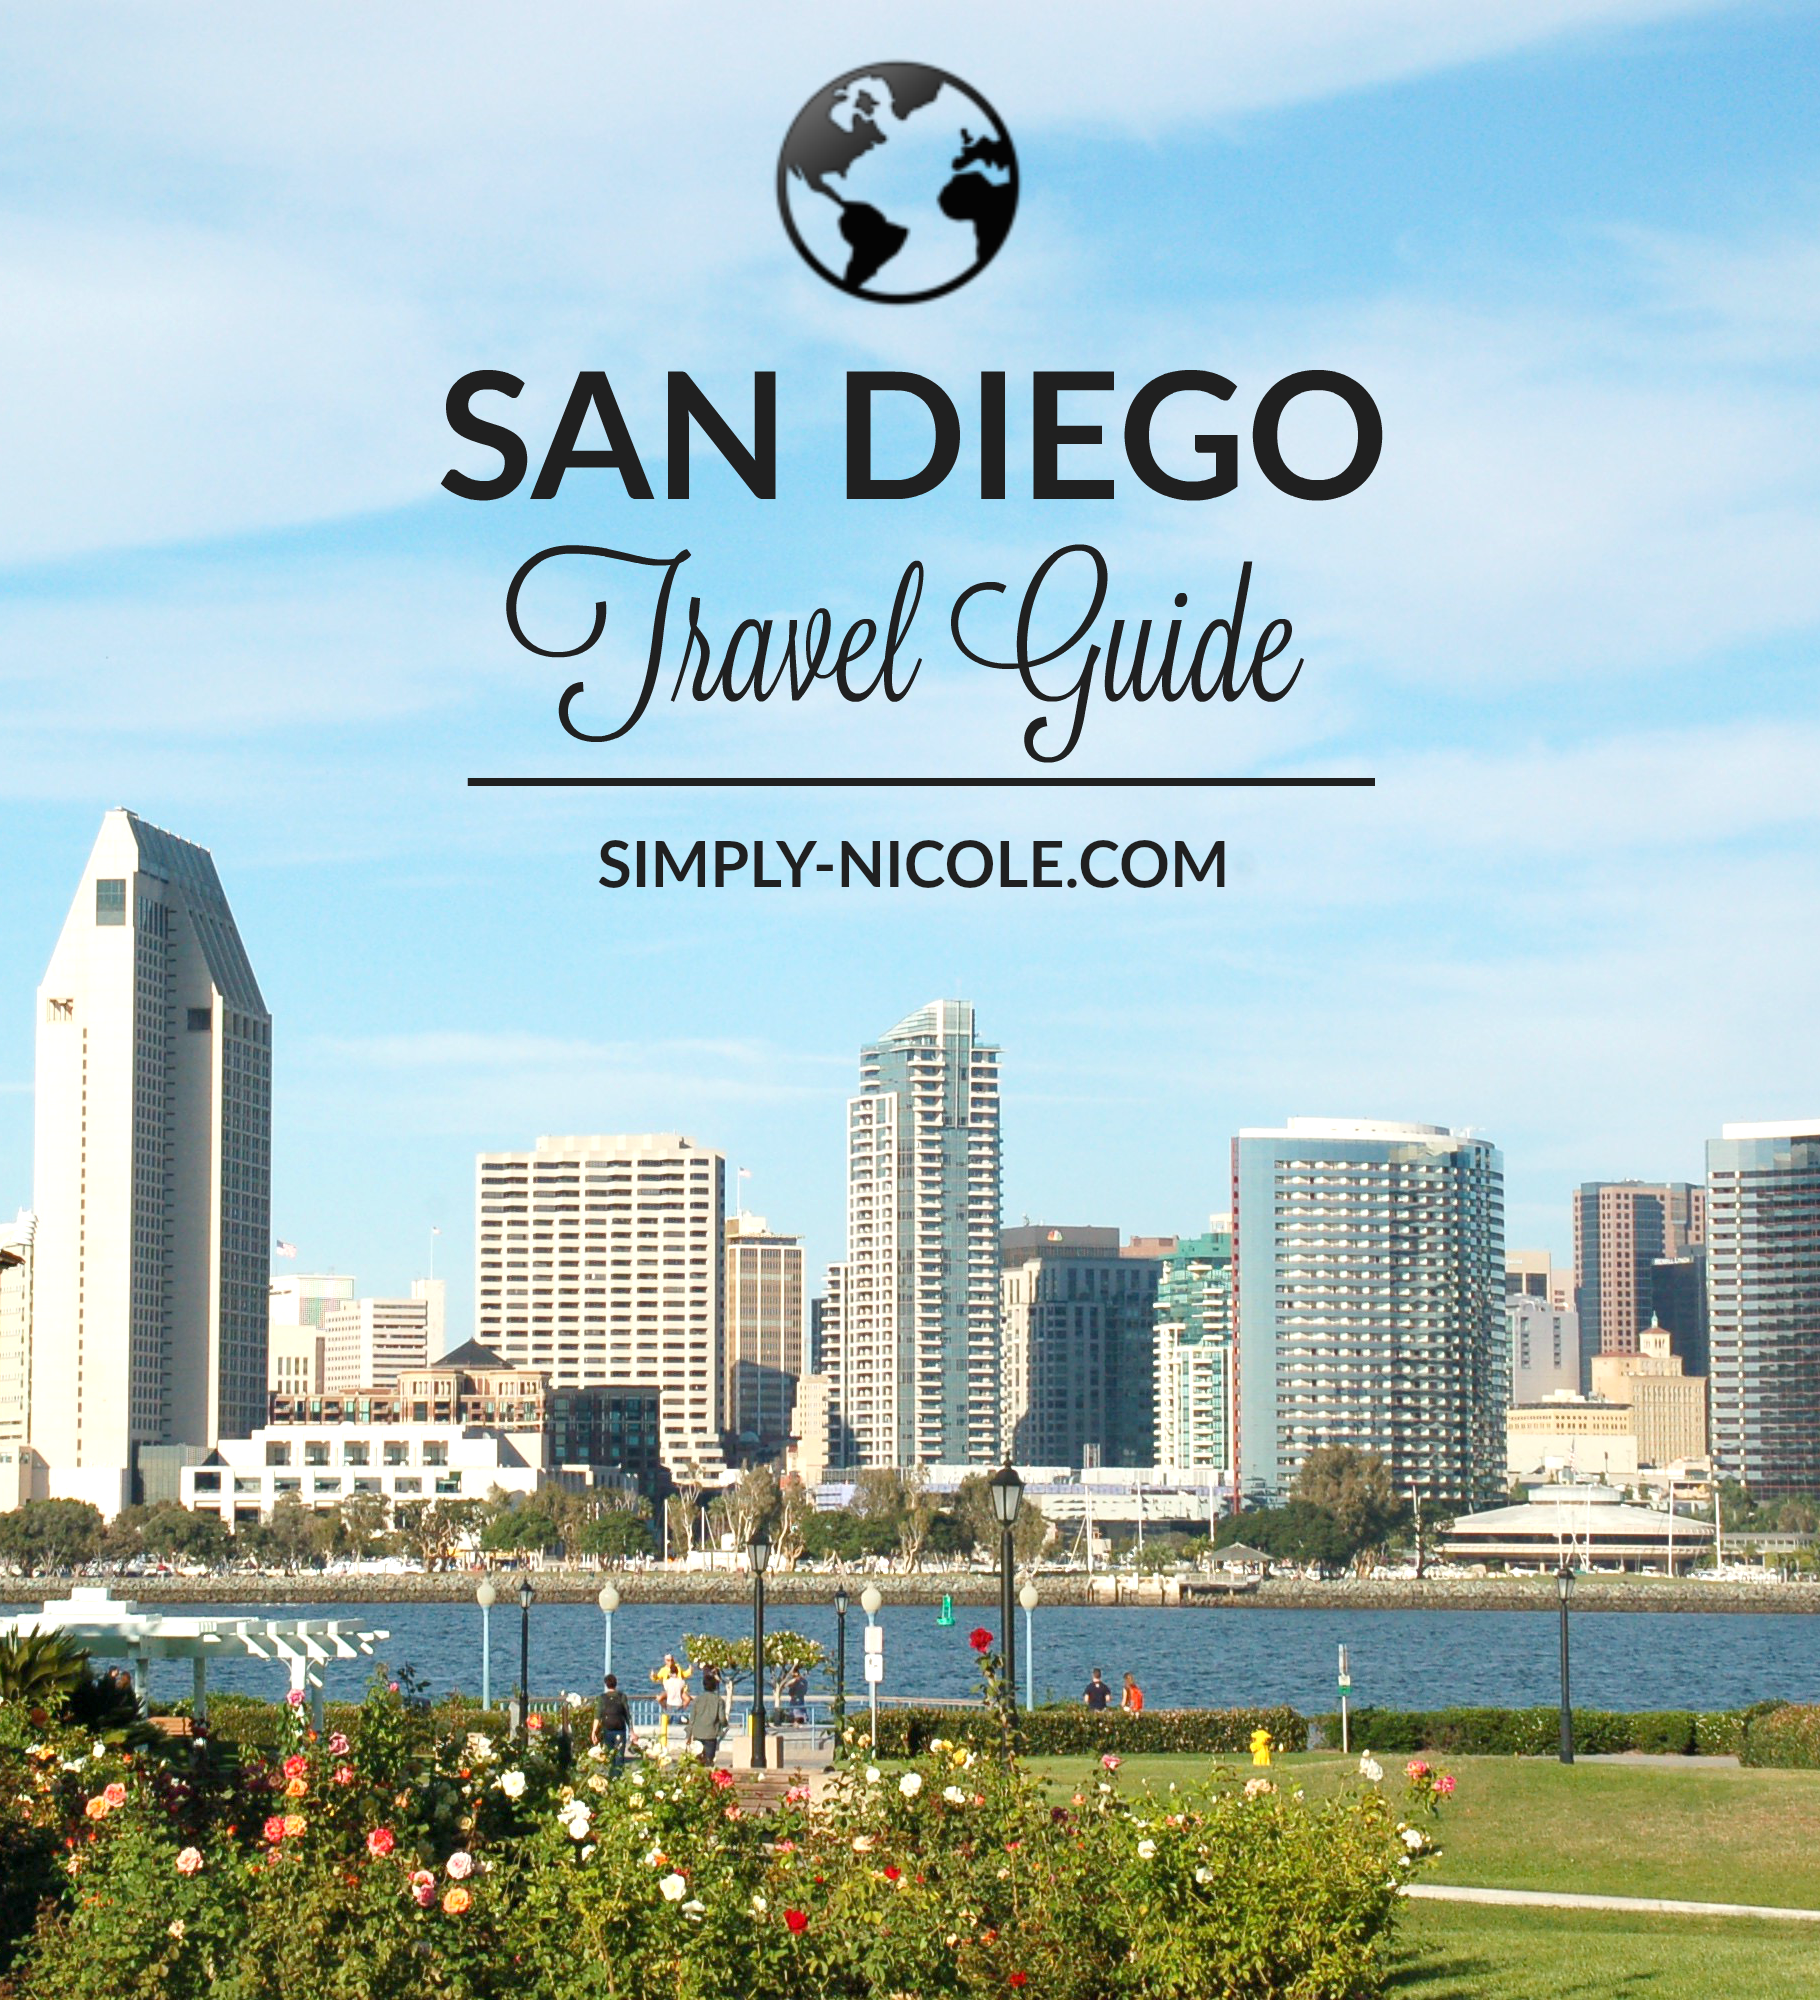 San Diego Travel